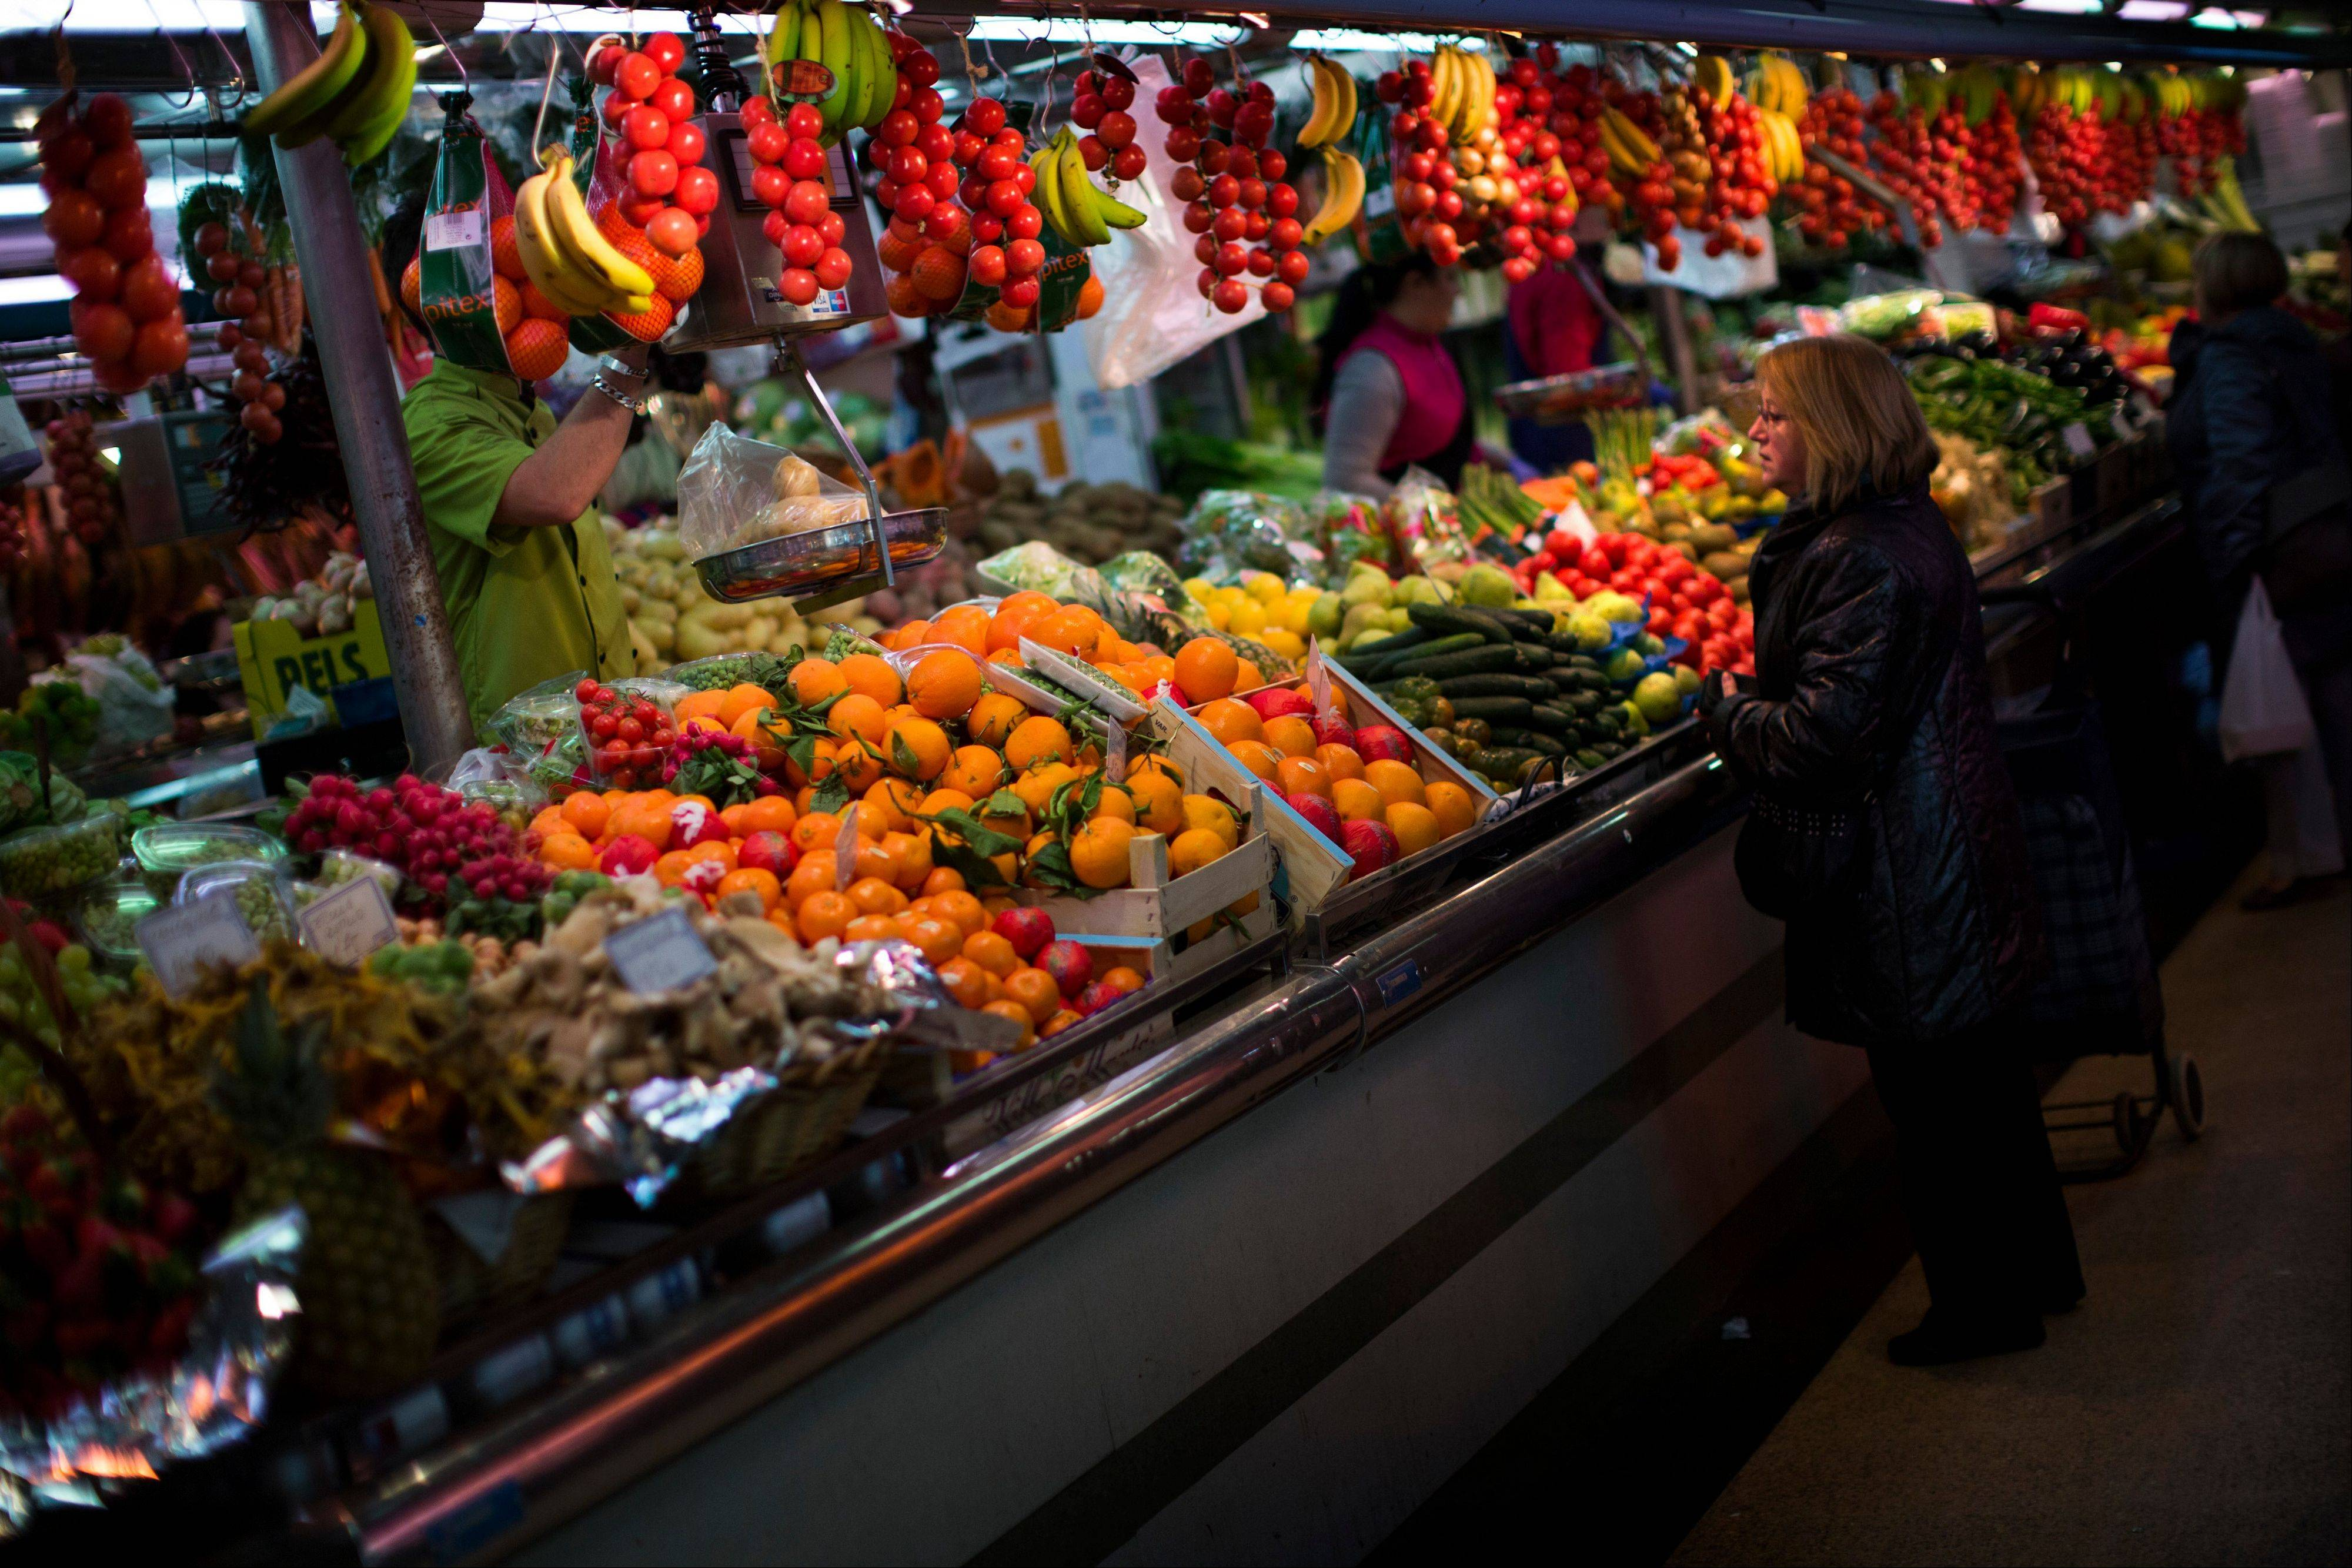 Mediterranean diets have long been touted as heart-healthy, but that's based on observational studies. Now, one of the longest and most scientific tests suggests this style of eating can cut the chance of suffering heart-related problems, especially strokes, in older people at high risk of them.